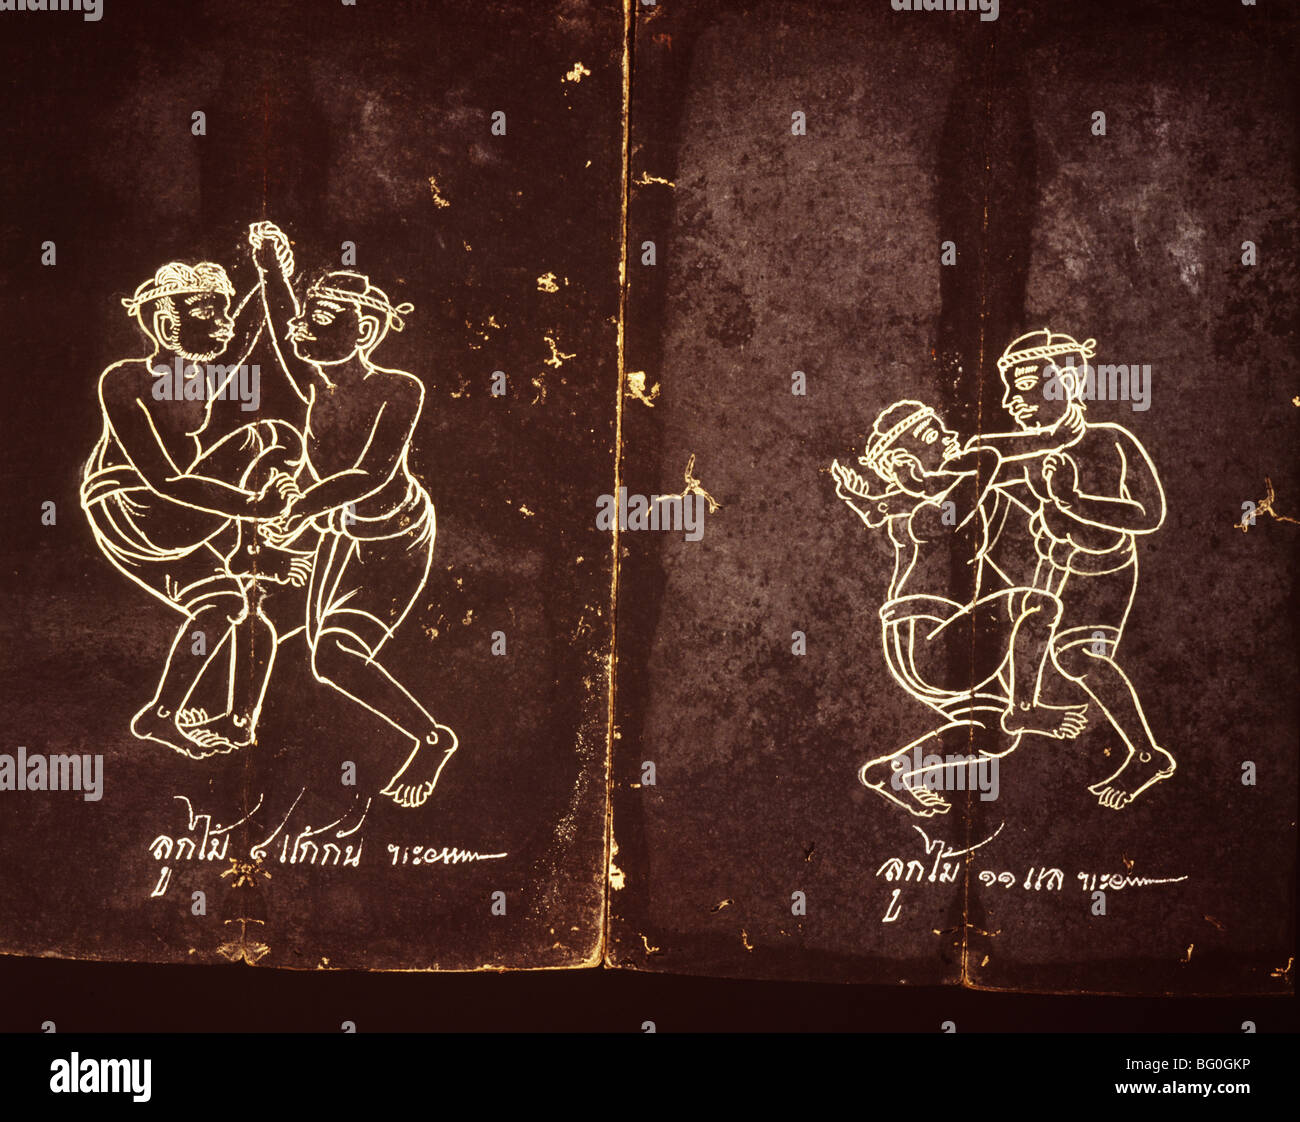 Manuscript on Thai Boxing, Thailand, Southeast Asia, Asia - Stock Image